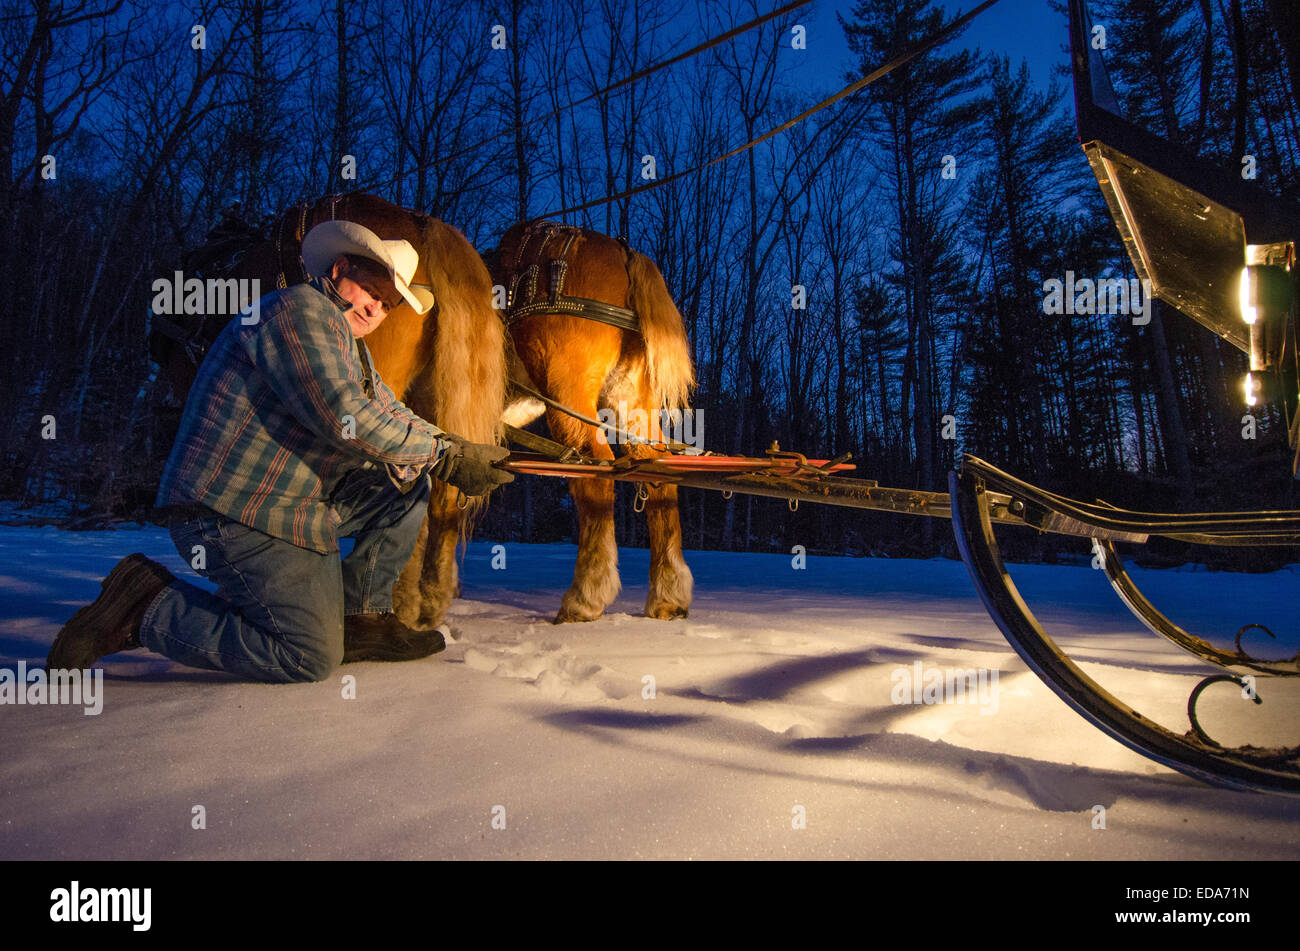 A cowboy prepares a horse drawn sleigh ride in the forests of New Hampshire. - Stock Image